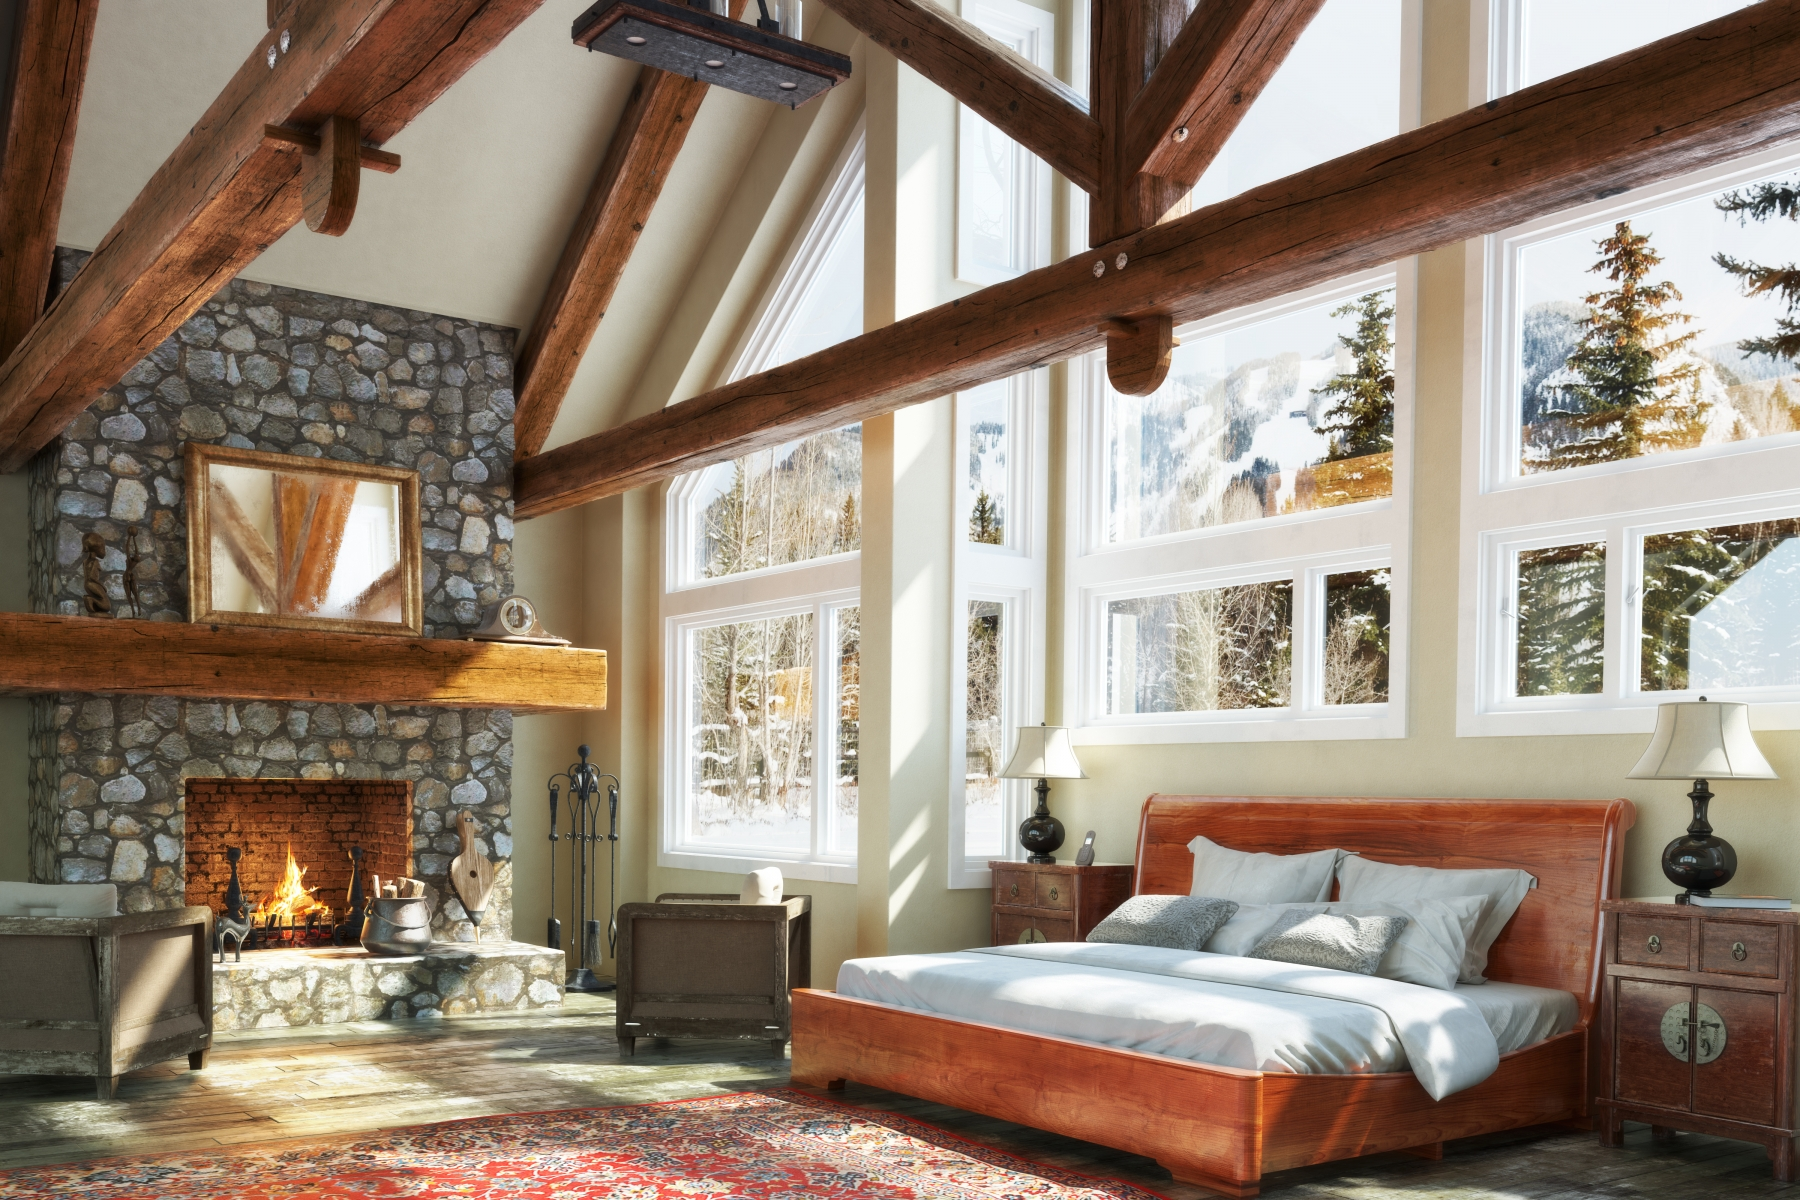 Interior of a custom built cabin with wood beams and stone fireplace